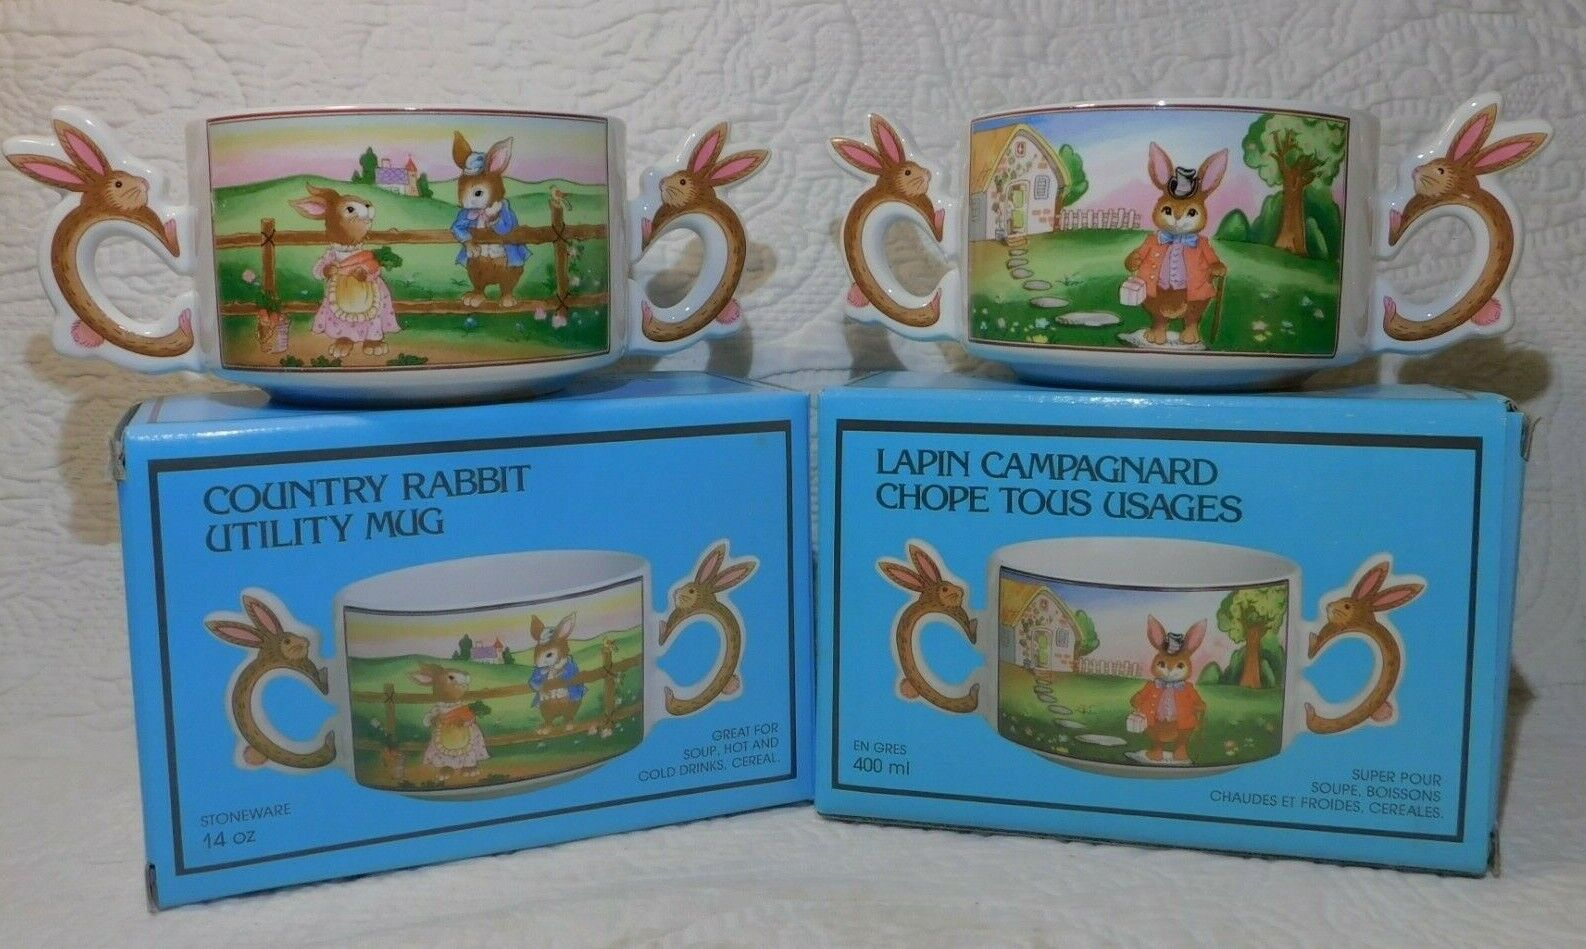 Lot of 2 Vintage 1988 COUNTRY BUNNY RABBIT Utility Mug DOUBLE HANDLE BOWLS Action Industries 22272